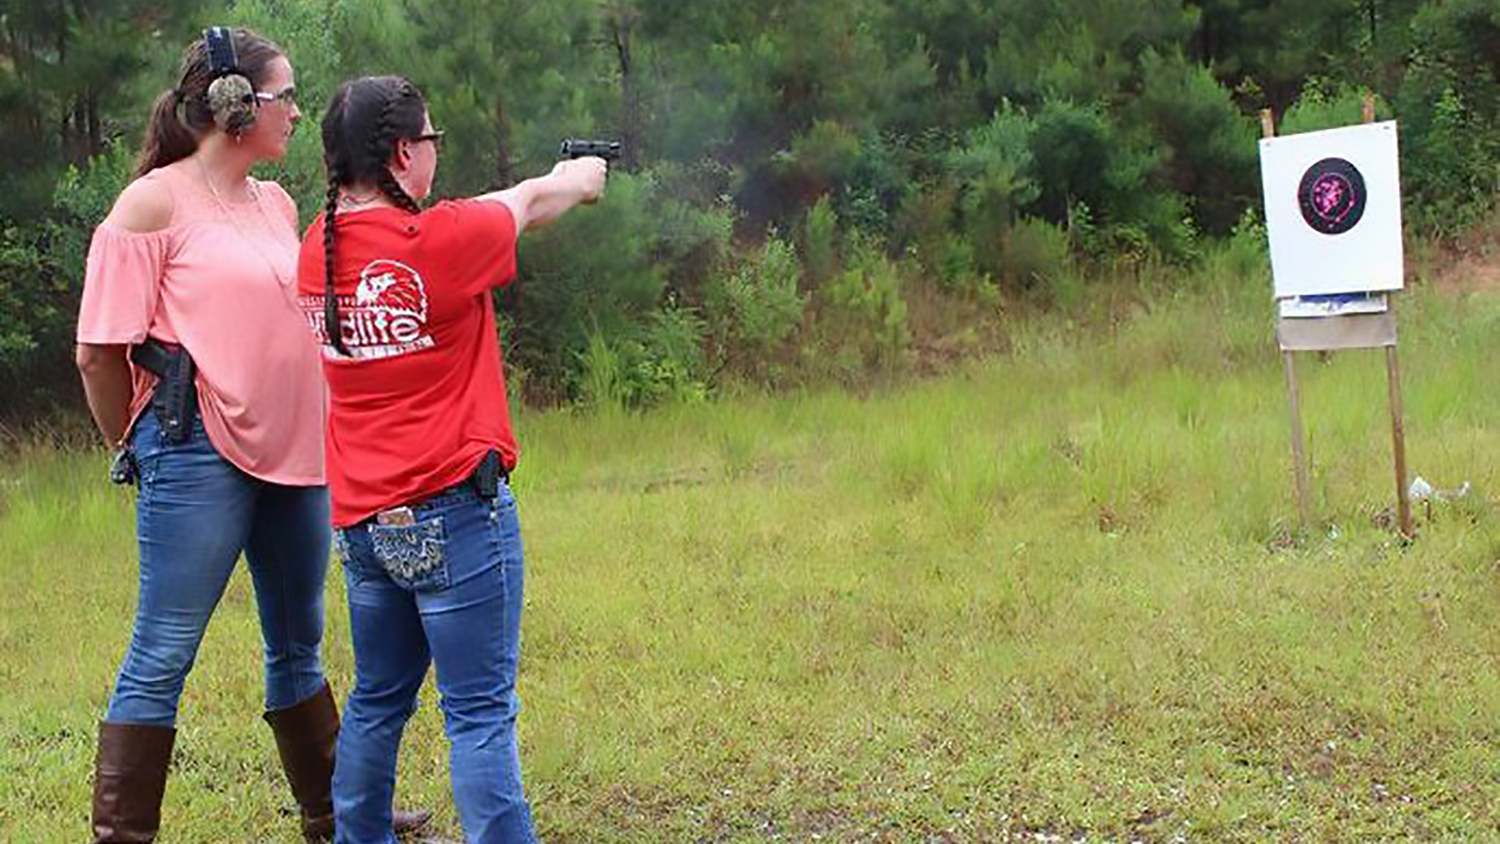 The Meridian Star: Instructor shares her passion for firearms